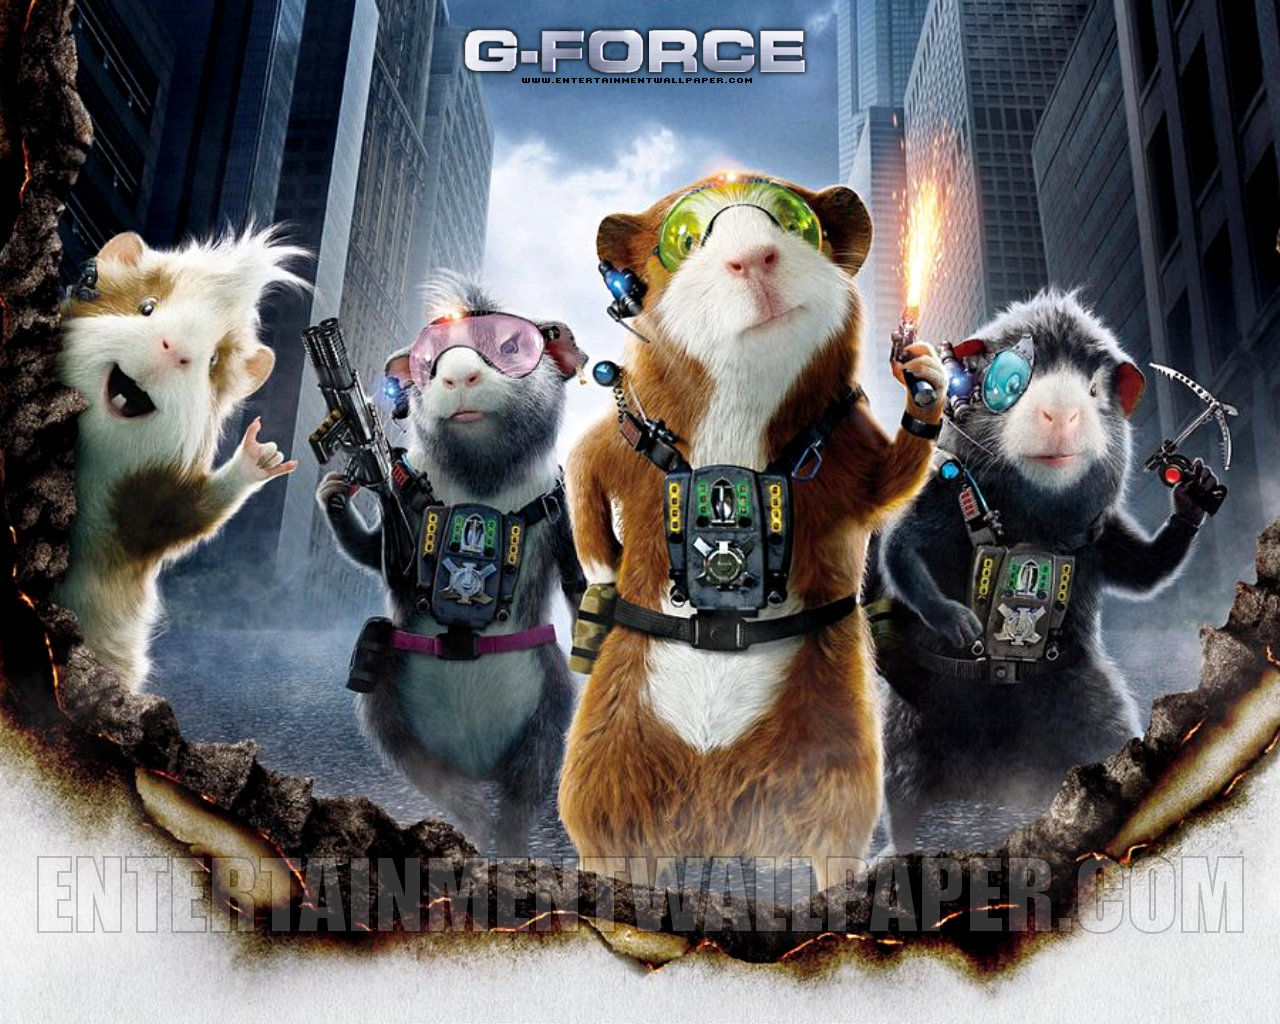 show g force wallpaper 10018286 size 1280x1024 more g force wallpaper 1280x1024